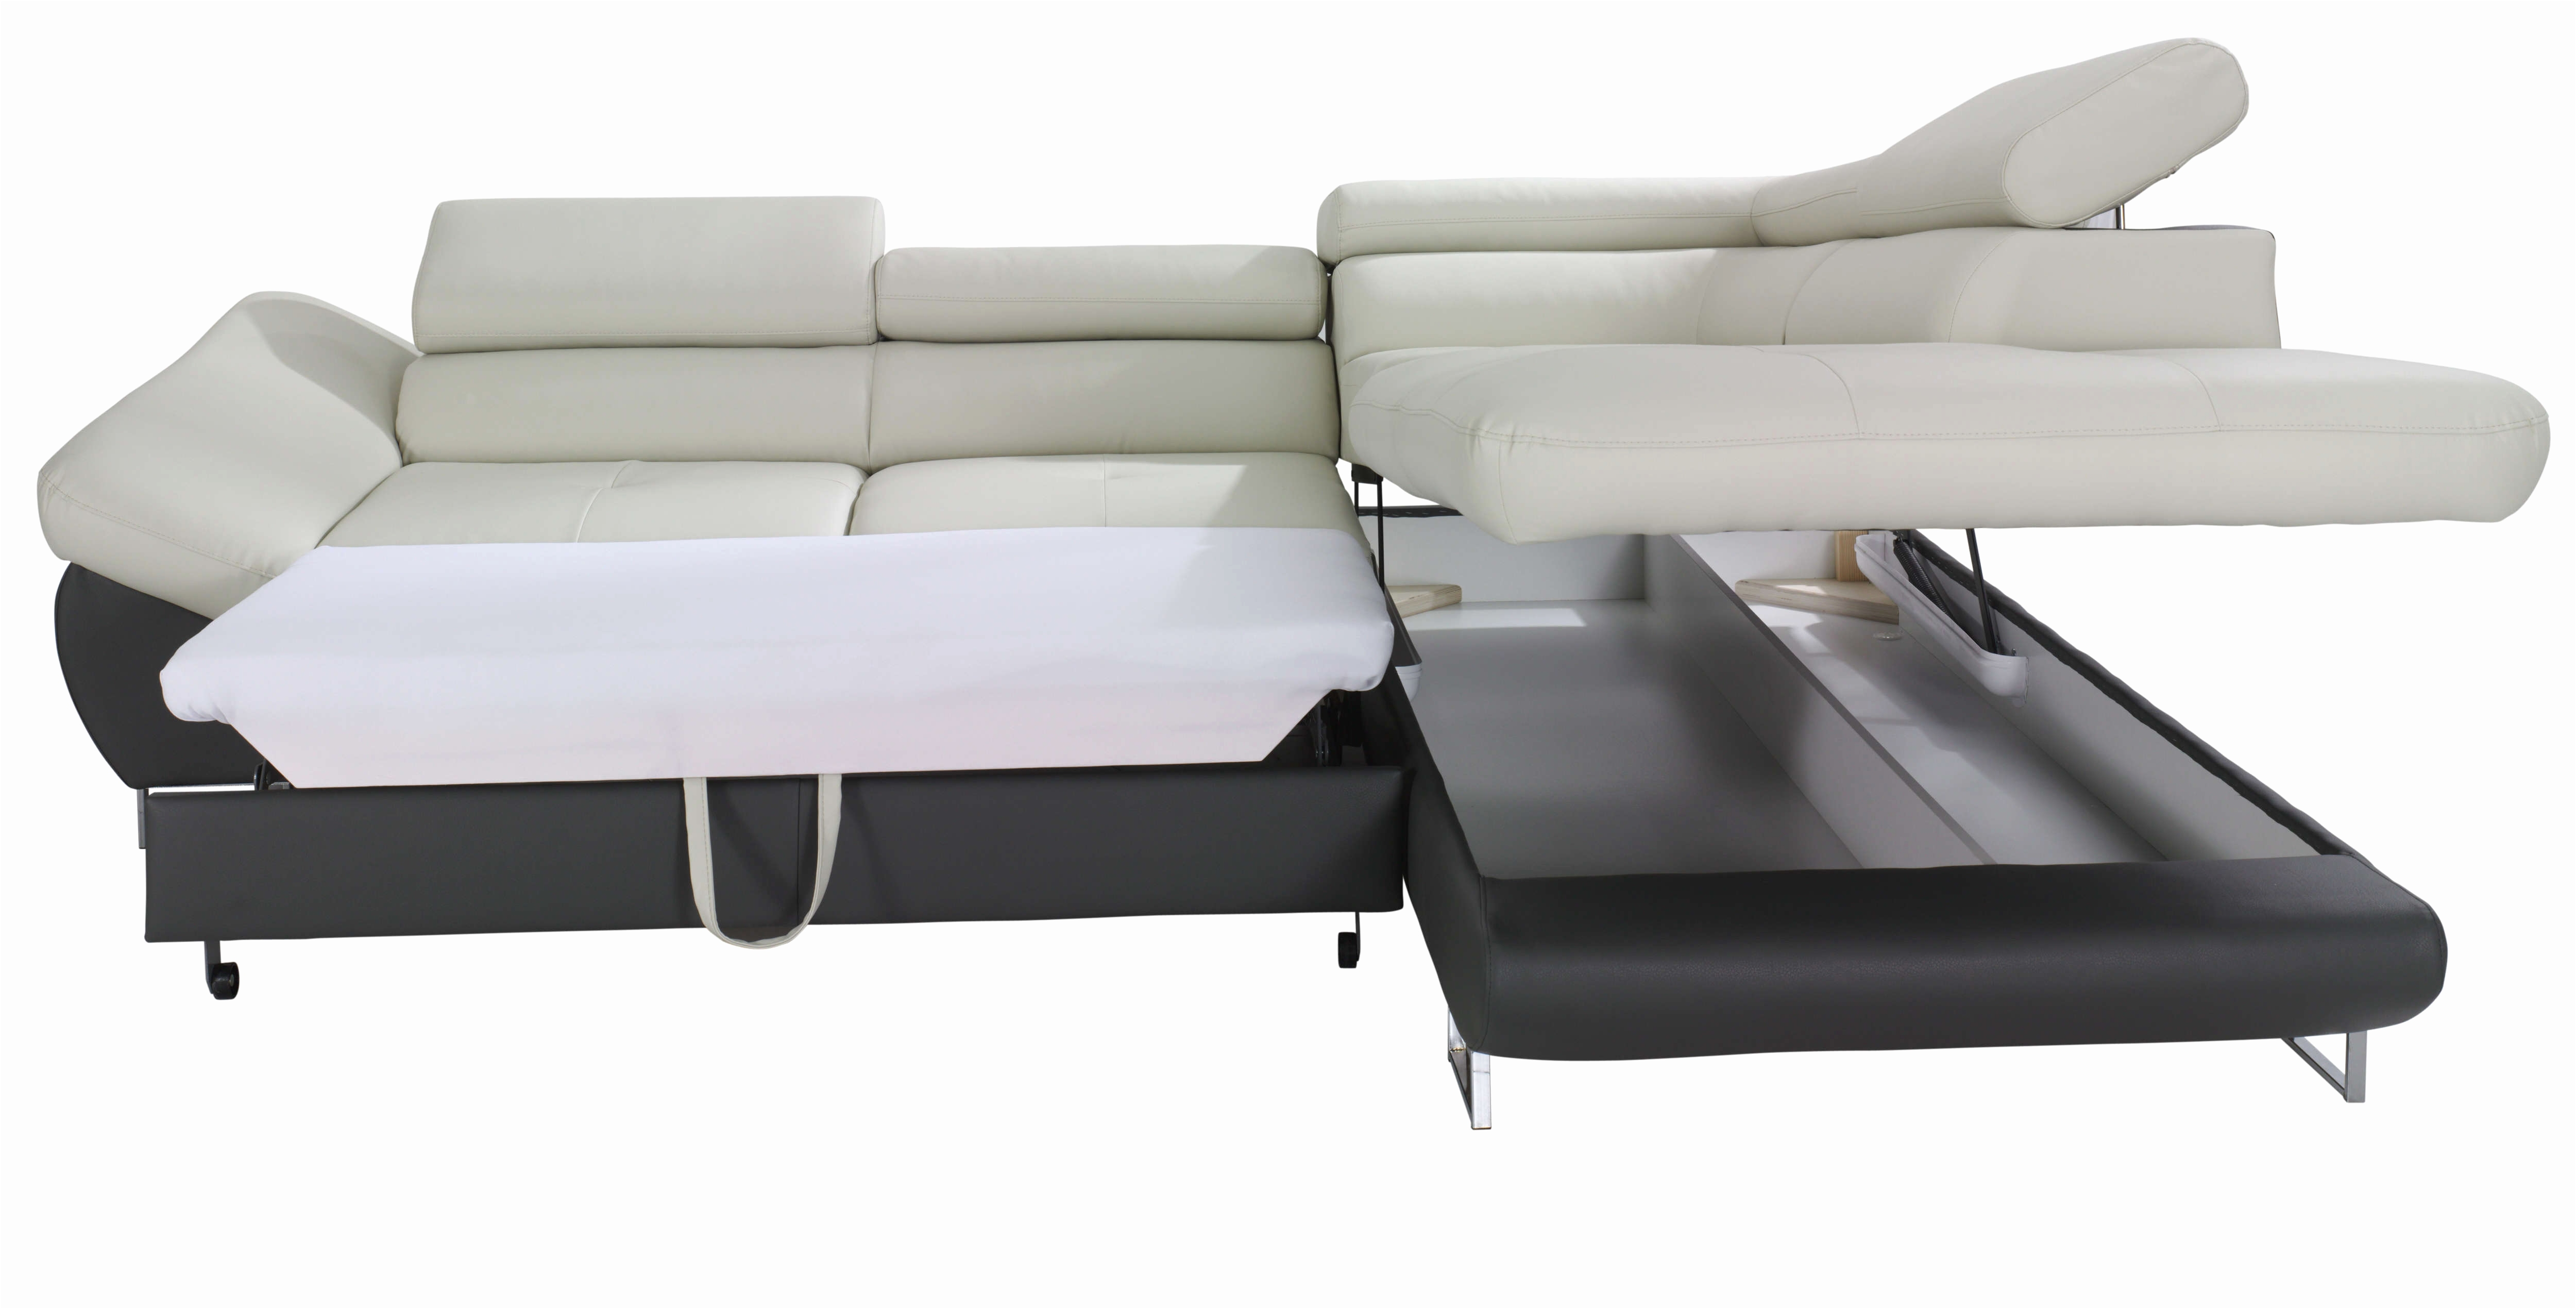 fancy sectional sofa pull out bed decoration-Inspirational Sectional sofa Pull Out Bed Plan